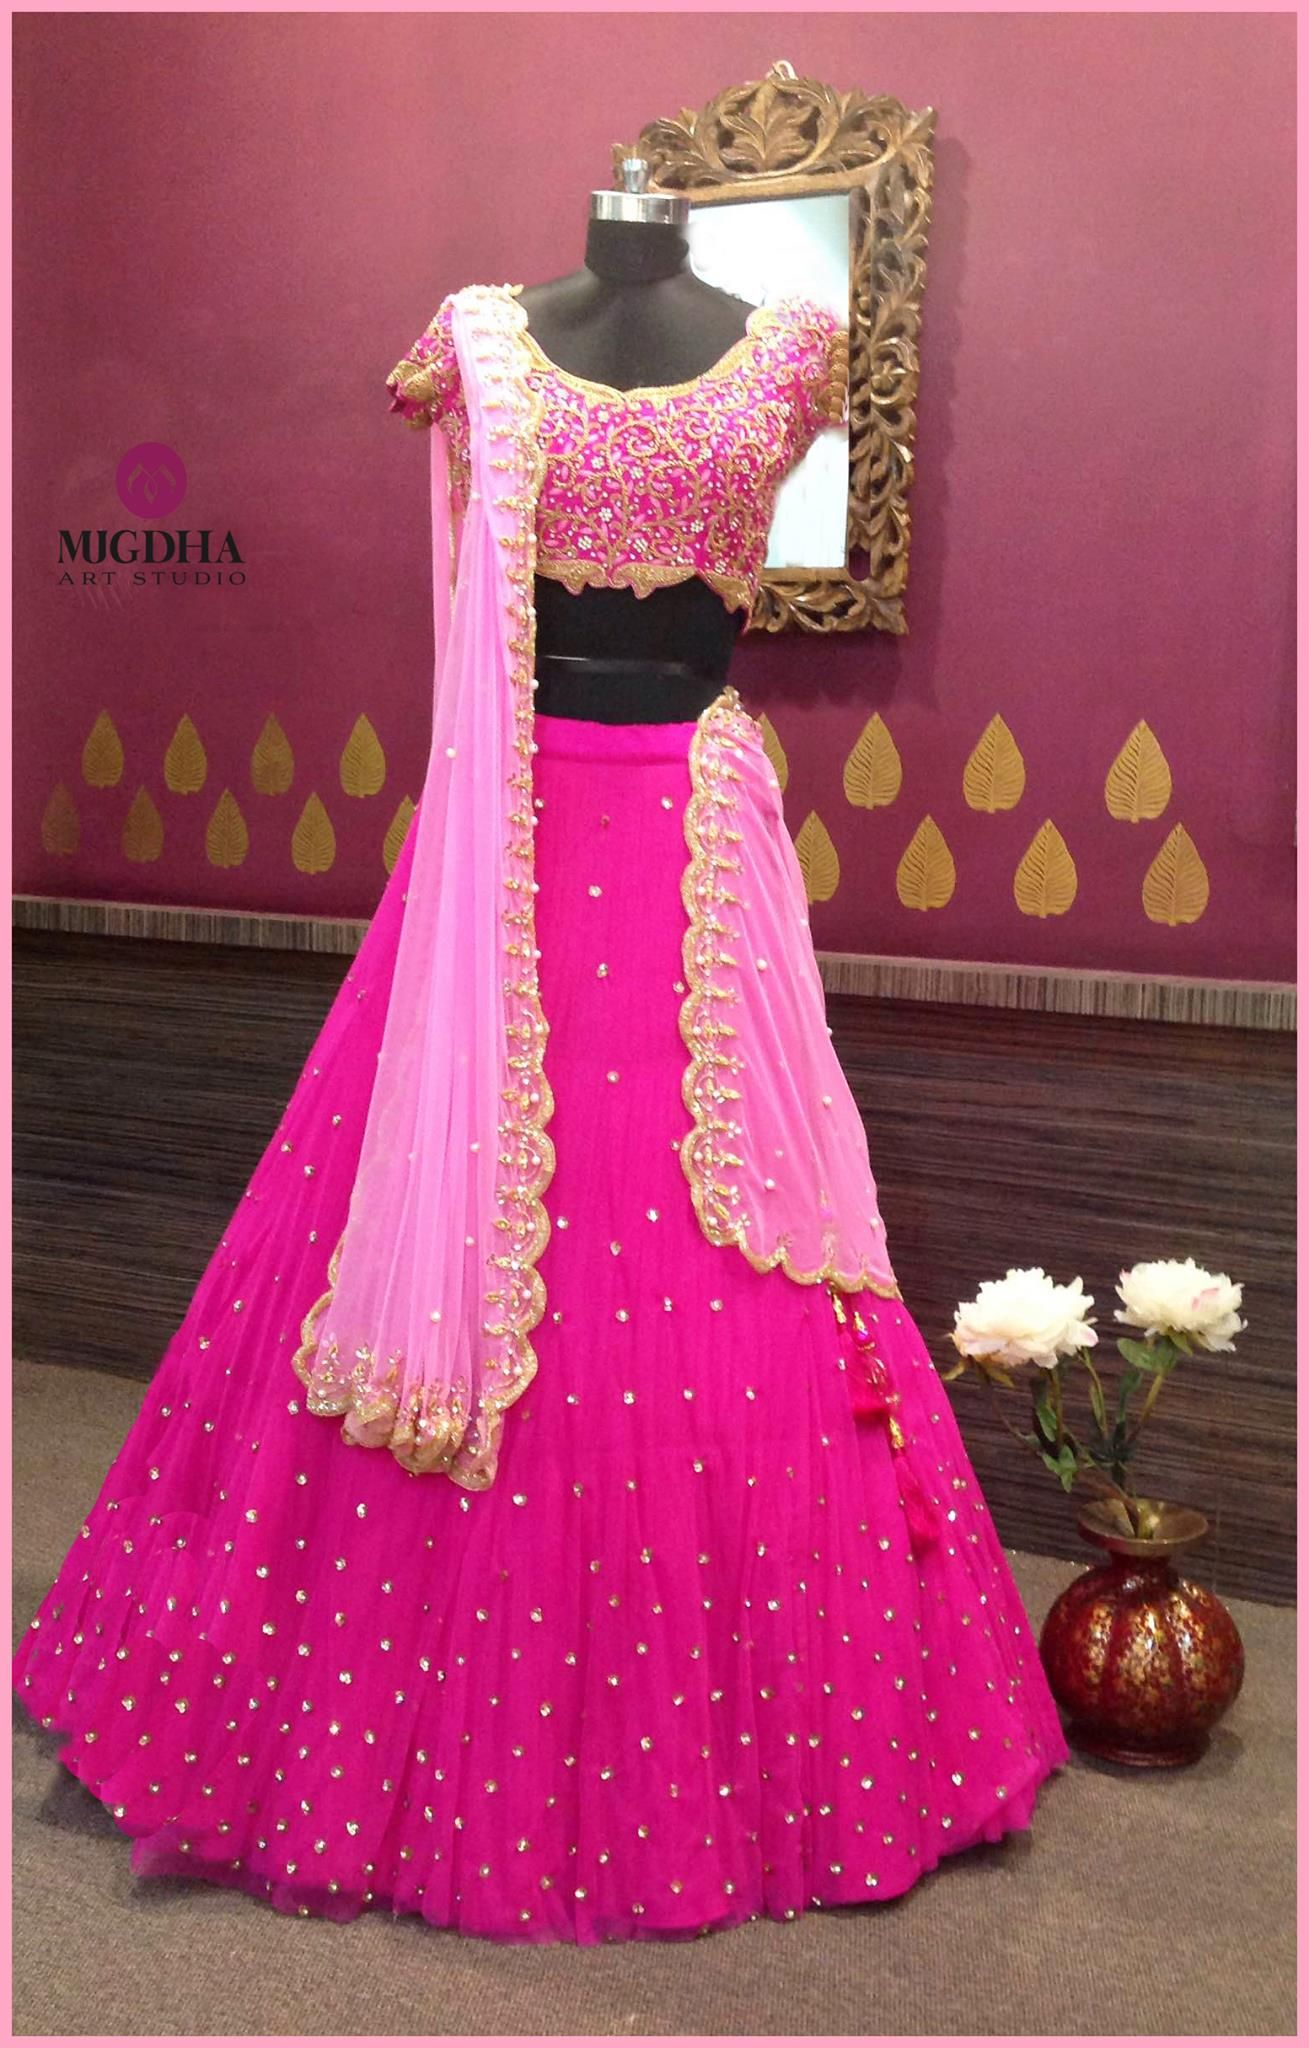 Pin de vishakha gaware en indian outfits | Pinterest